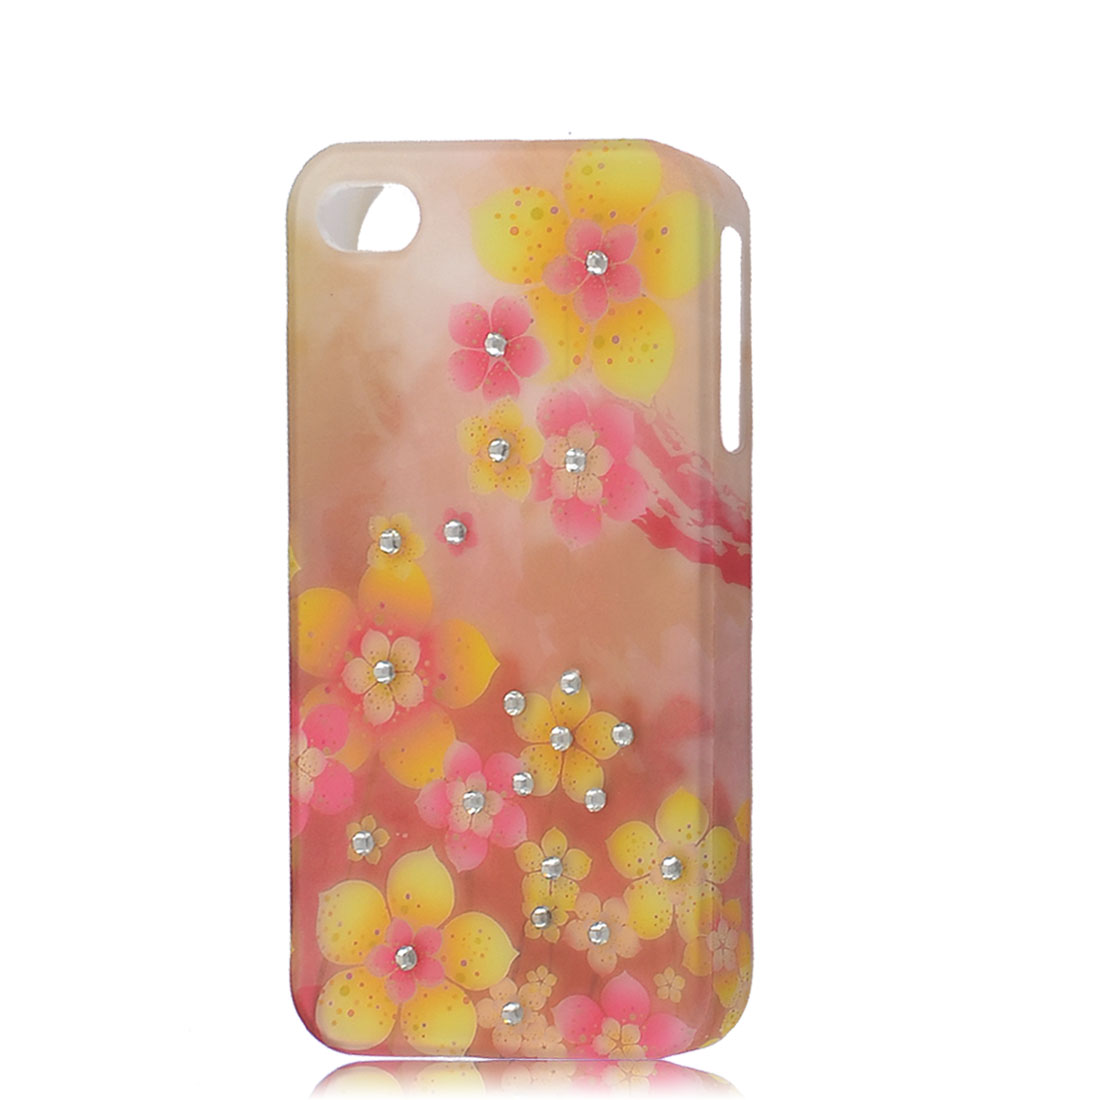 Multicolor Floral Printed Rubber Coated Back Cover for iPhone 4 4G 4GS 4S